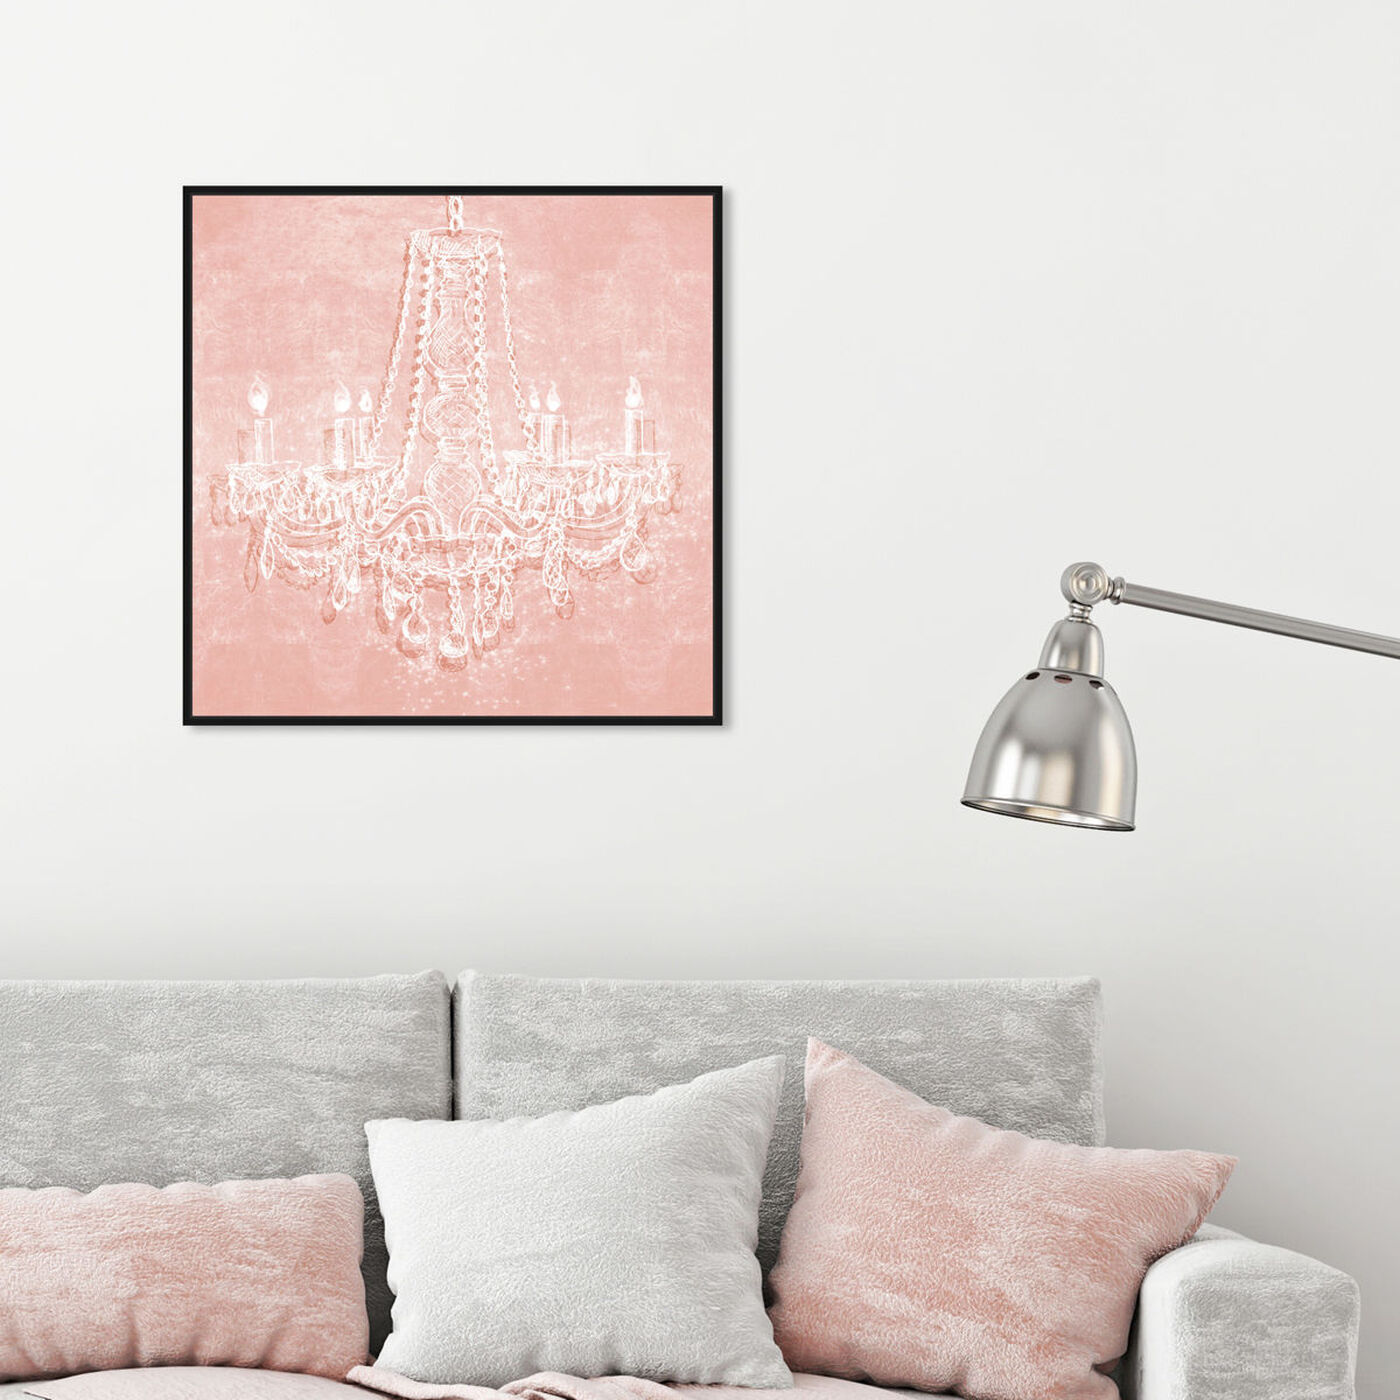 Hanging view of Light in the Rose featuring fashion and glam and chandeliers art.